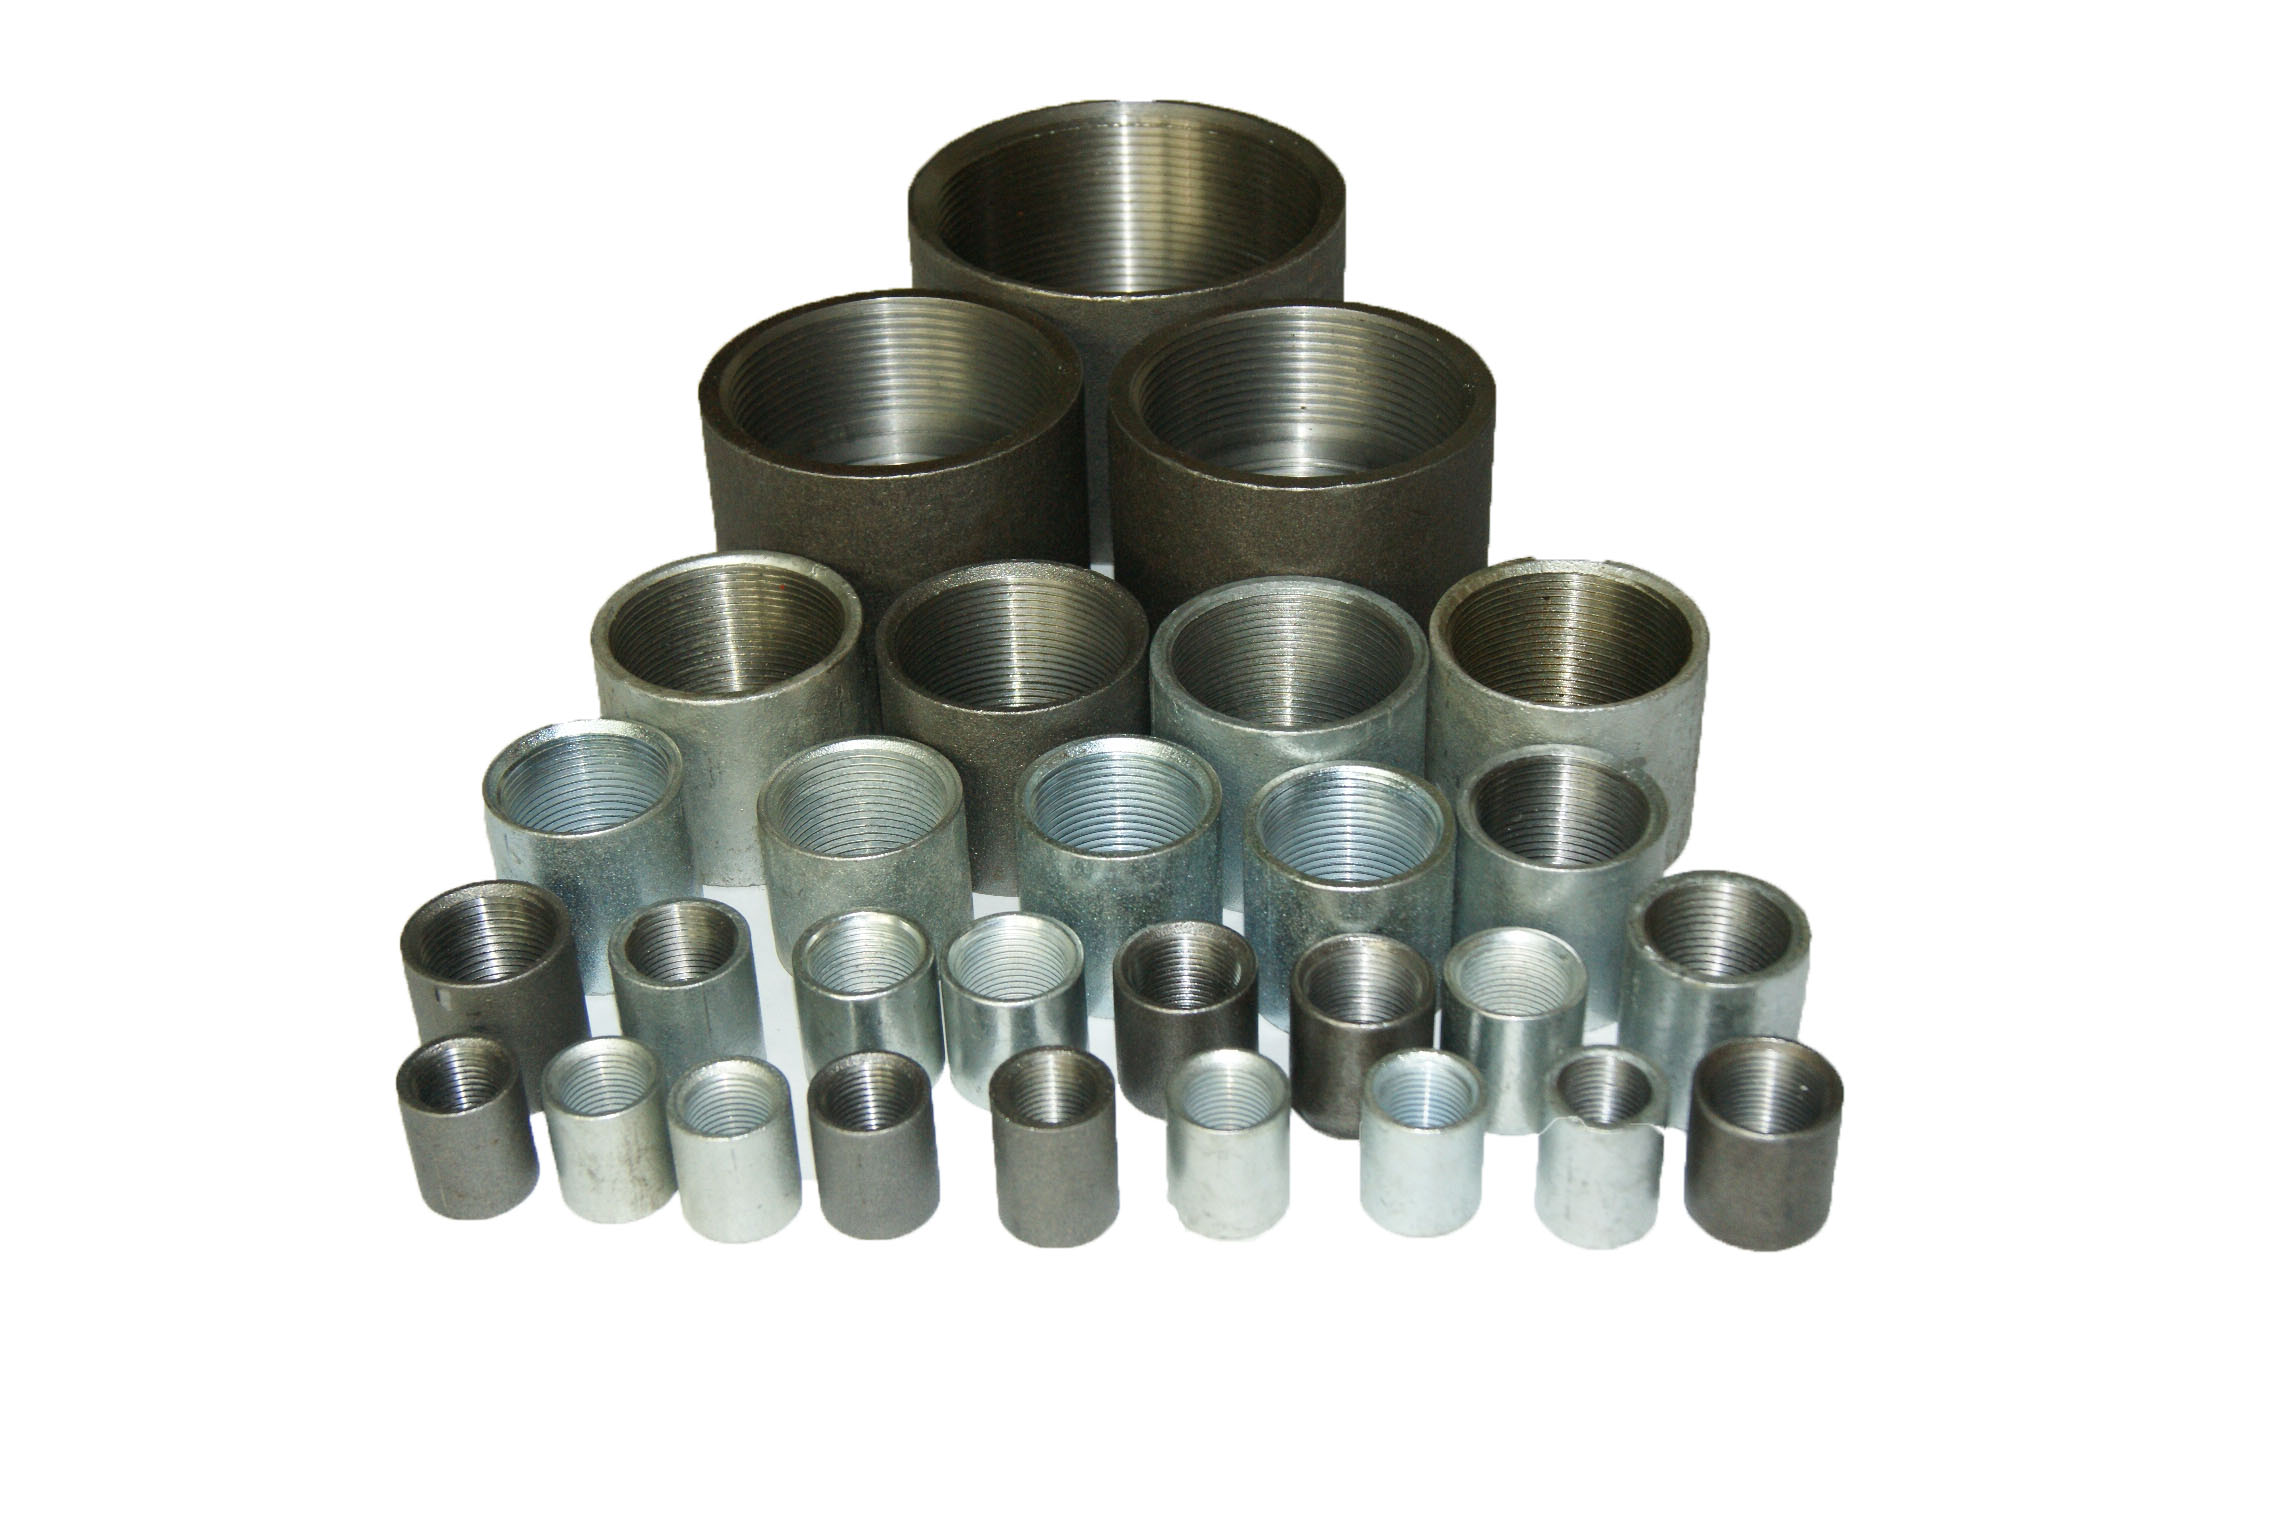 steel sockets